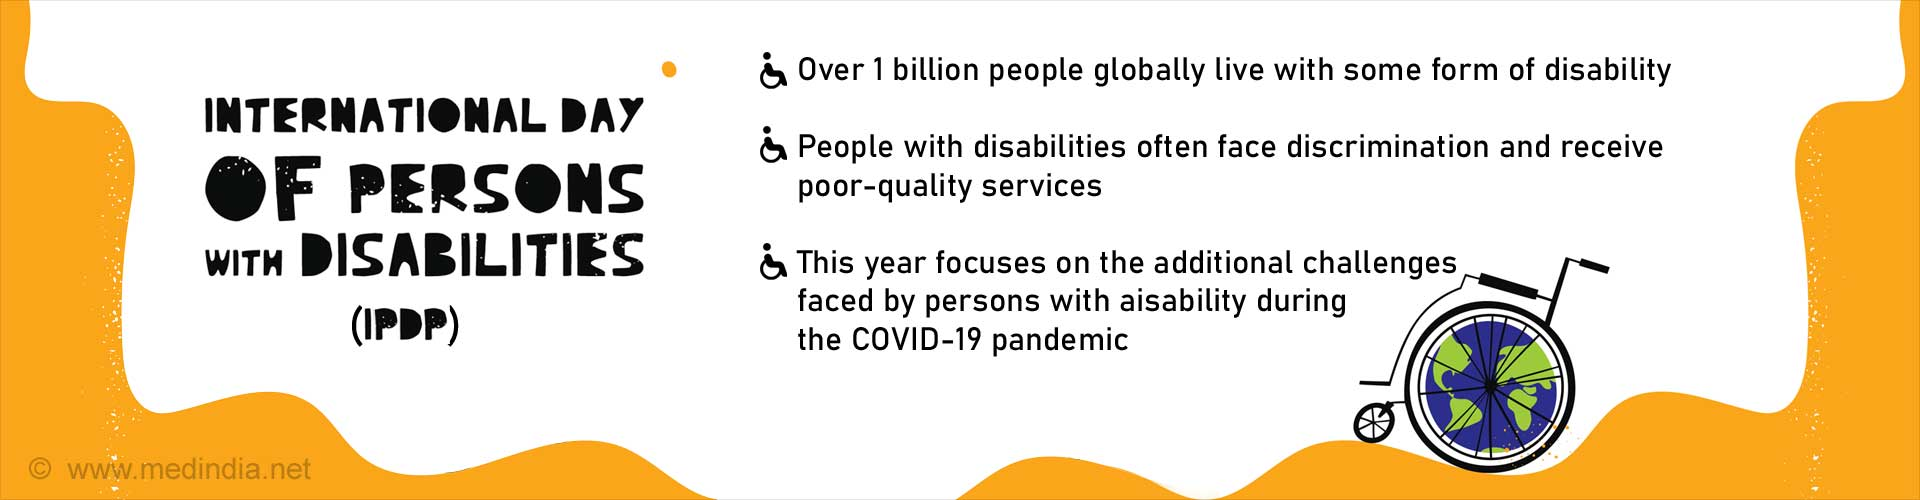 International Day of Persons With Disabilities 2017: Transformation Towards Sustainable and Resilient Society for All